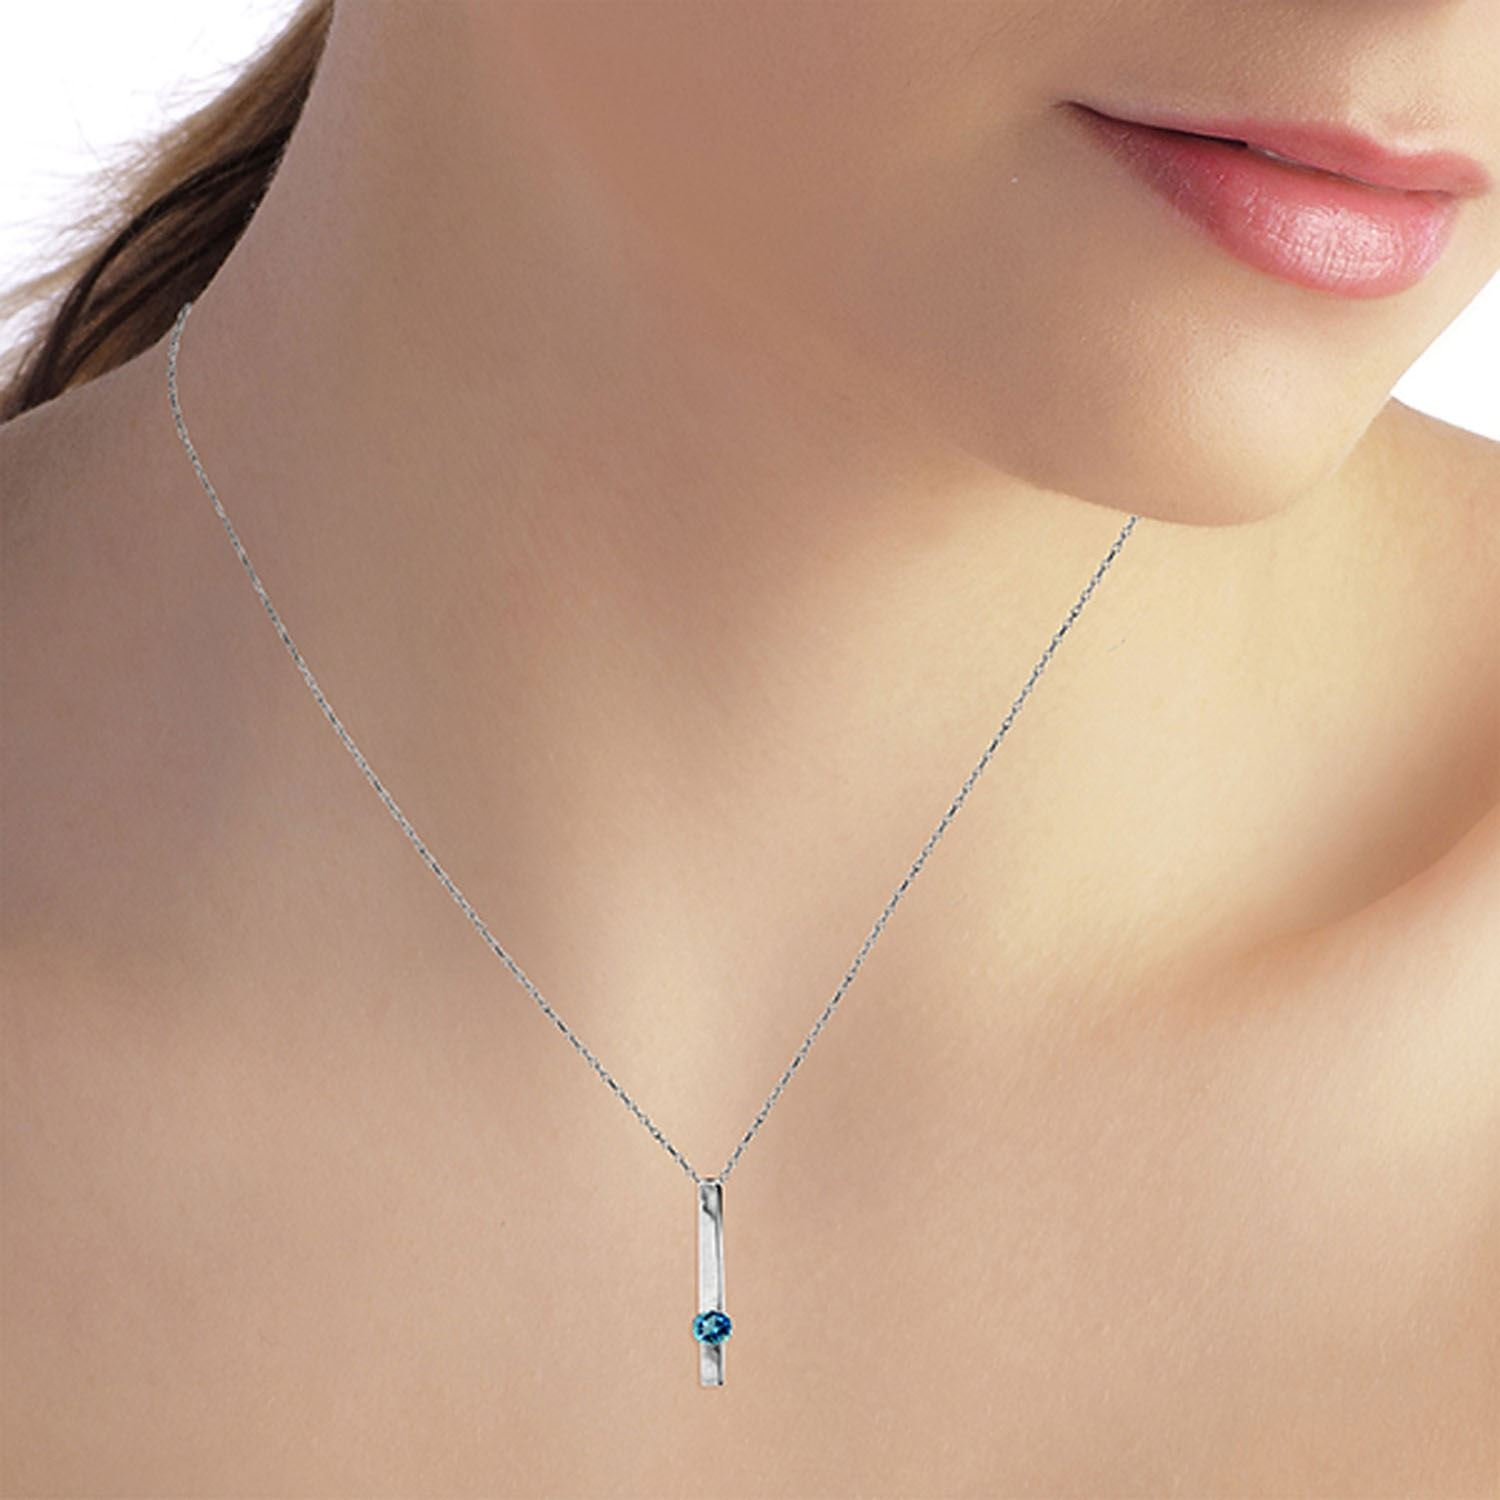 ALARRI 0.25 CTW 14K Solid White Gold Mysterious Ways Blue Topaz Necklace with 20 Inch Chain Length